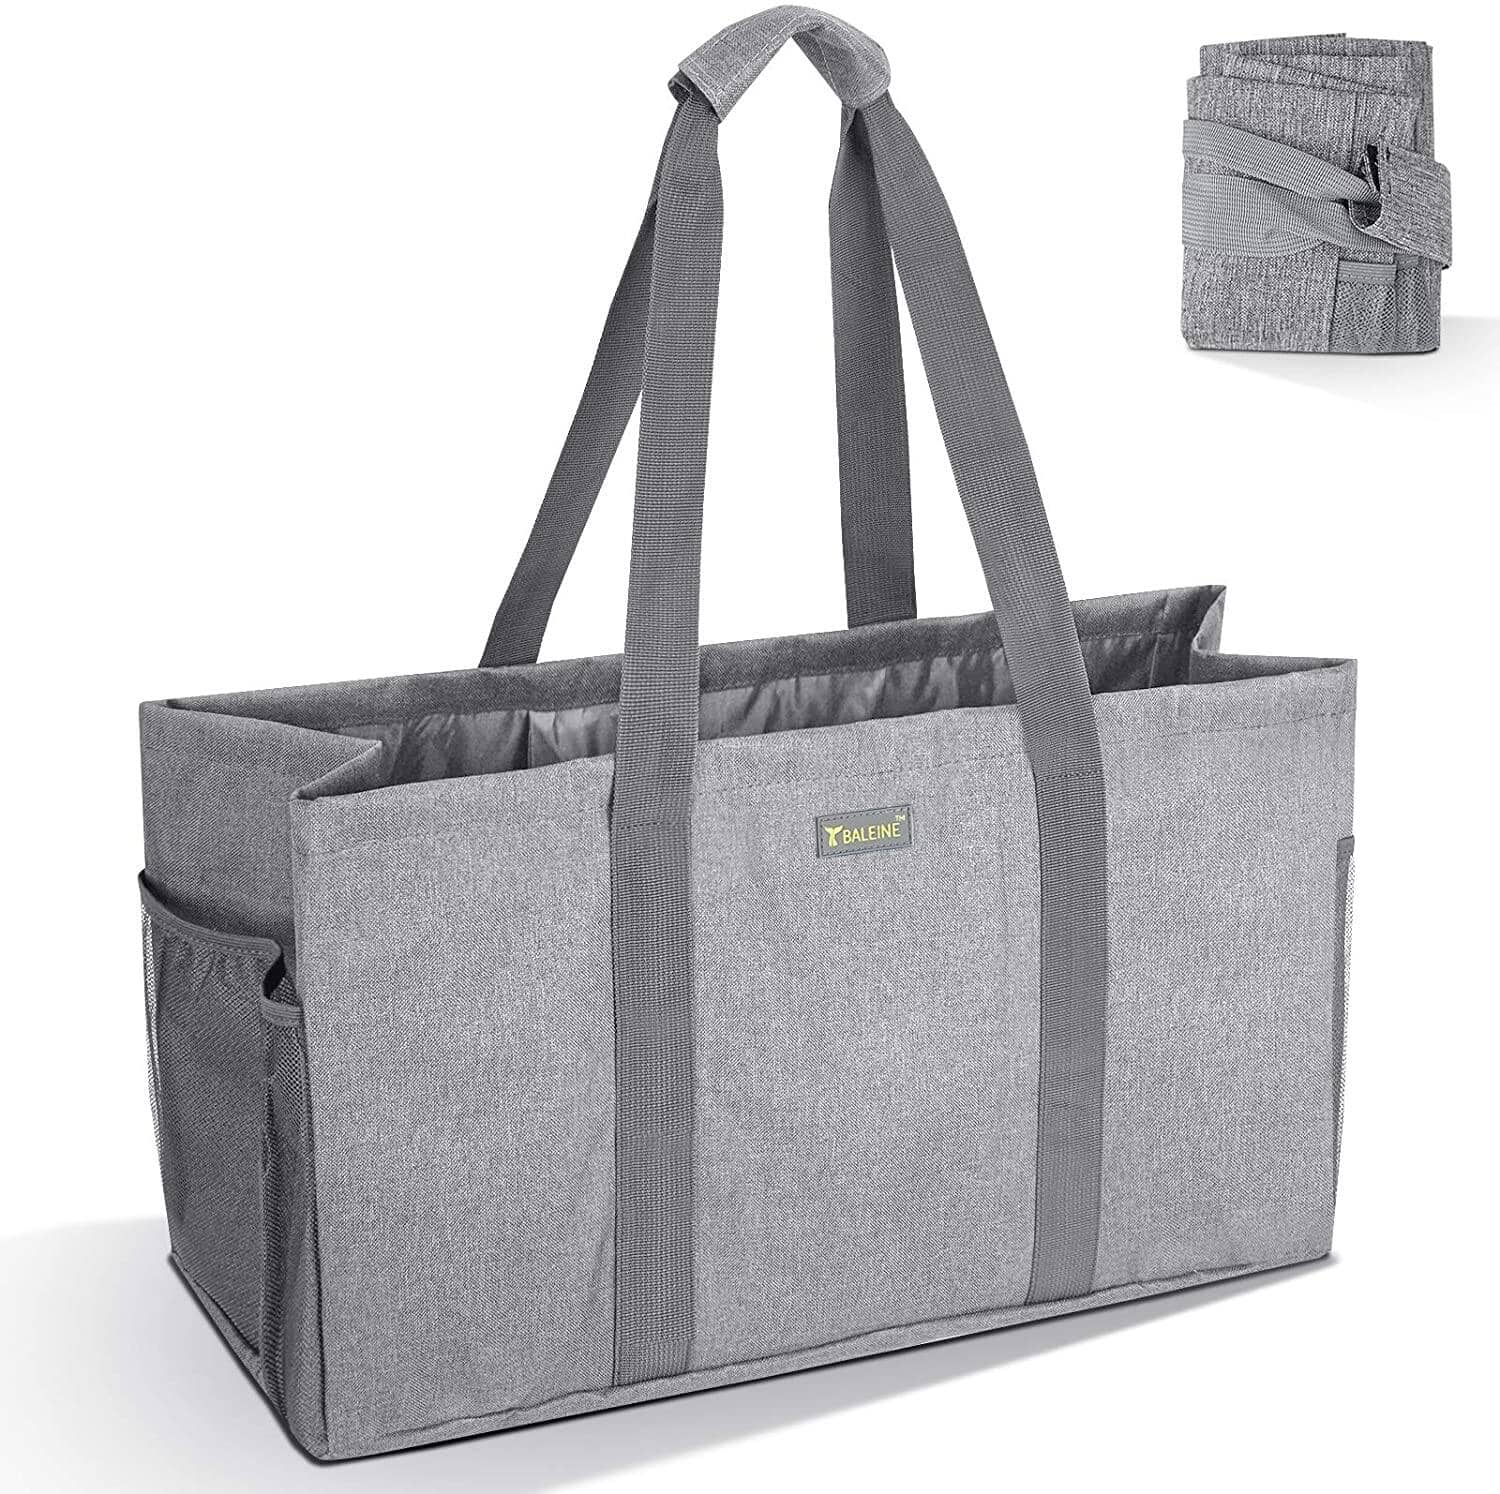 Ticonn US via Amazon: Oversized Soft Utility Tote Bag $13.29 + FS w/ Prime or Orders $25+